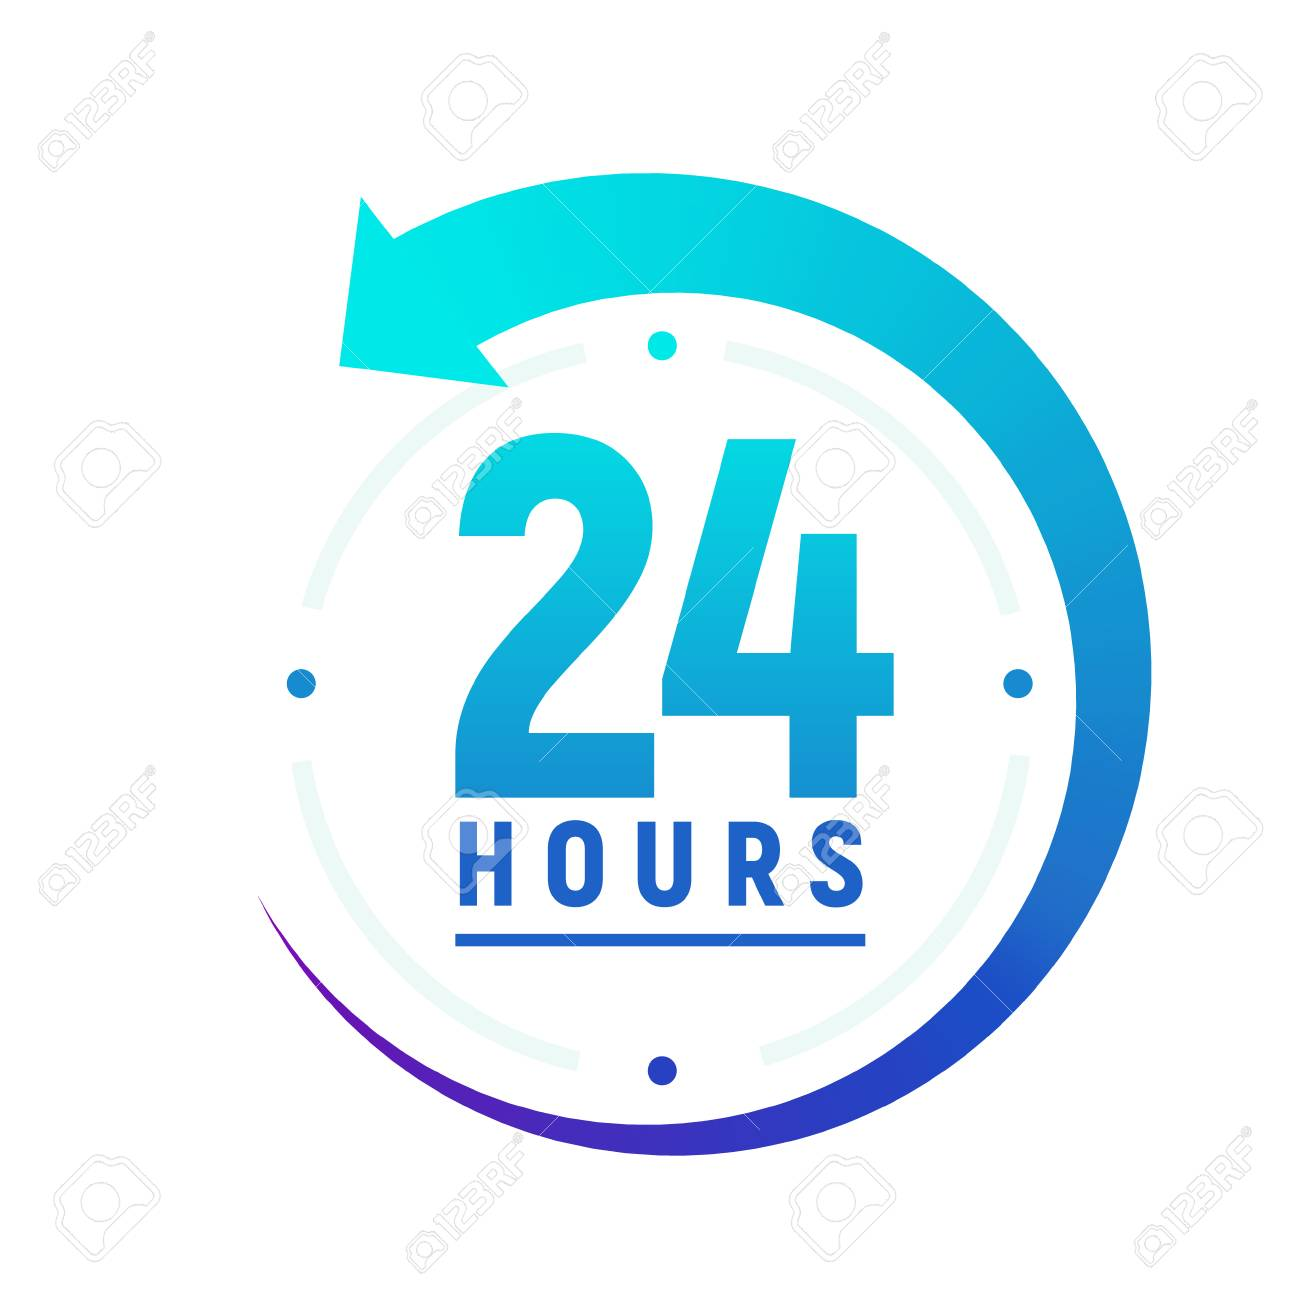 24 hours a day icon. Green clock icon around work. Service time support 24 hour per day. - 102620442